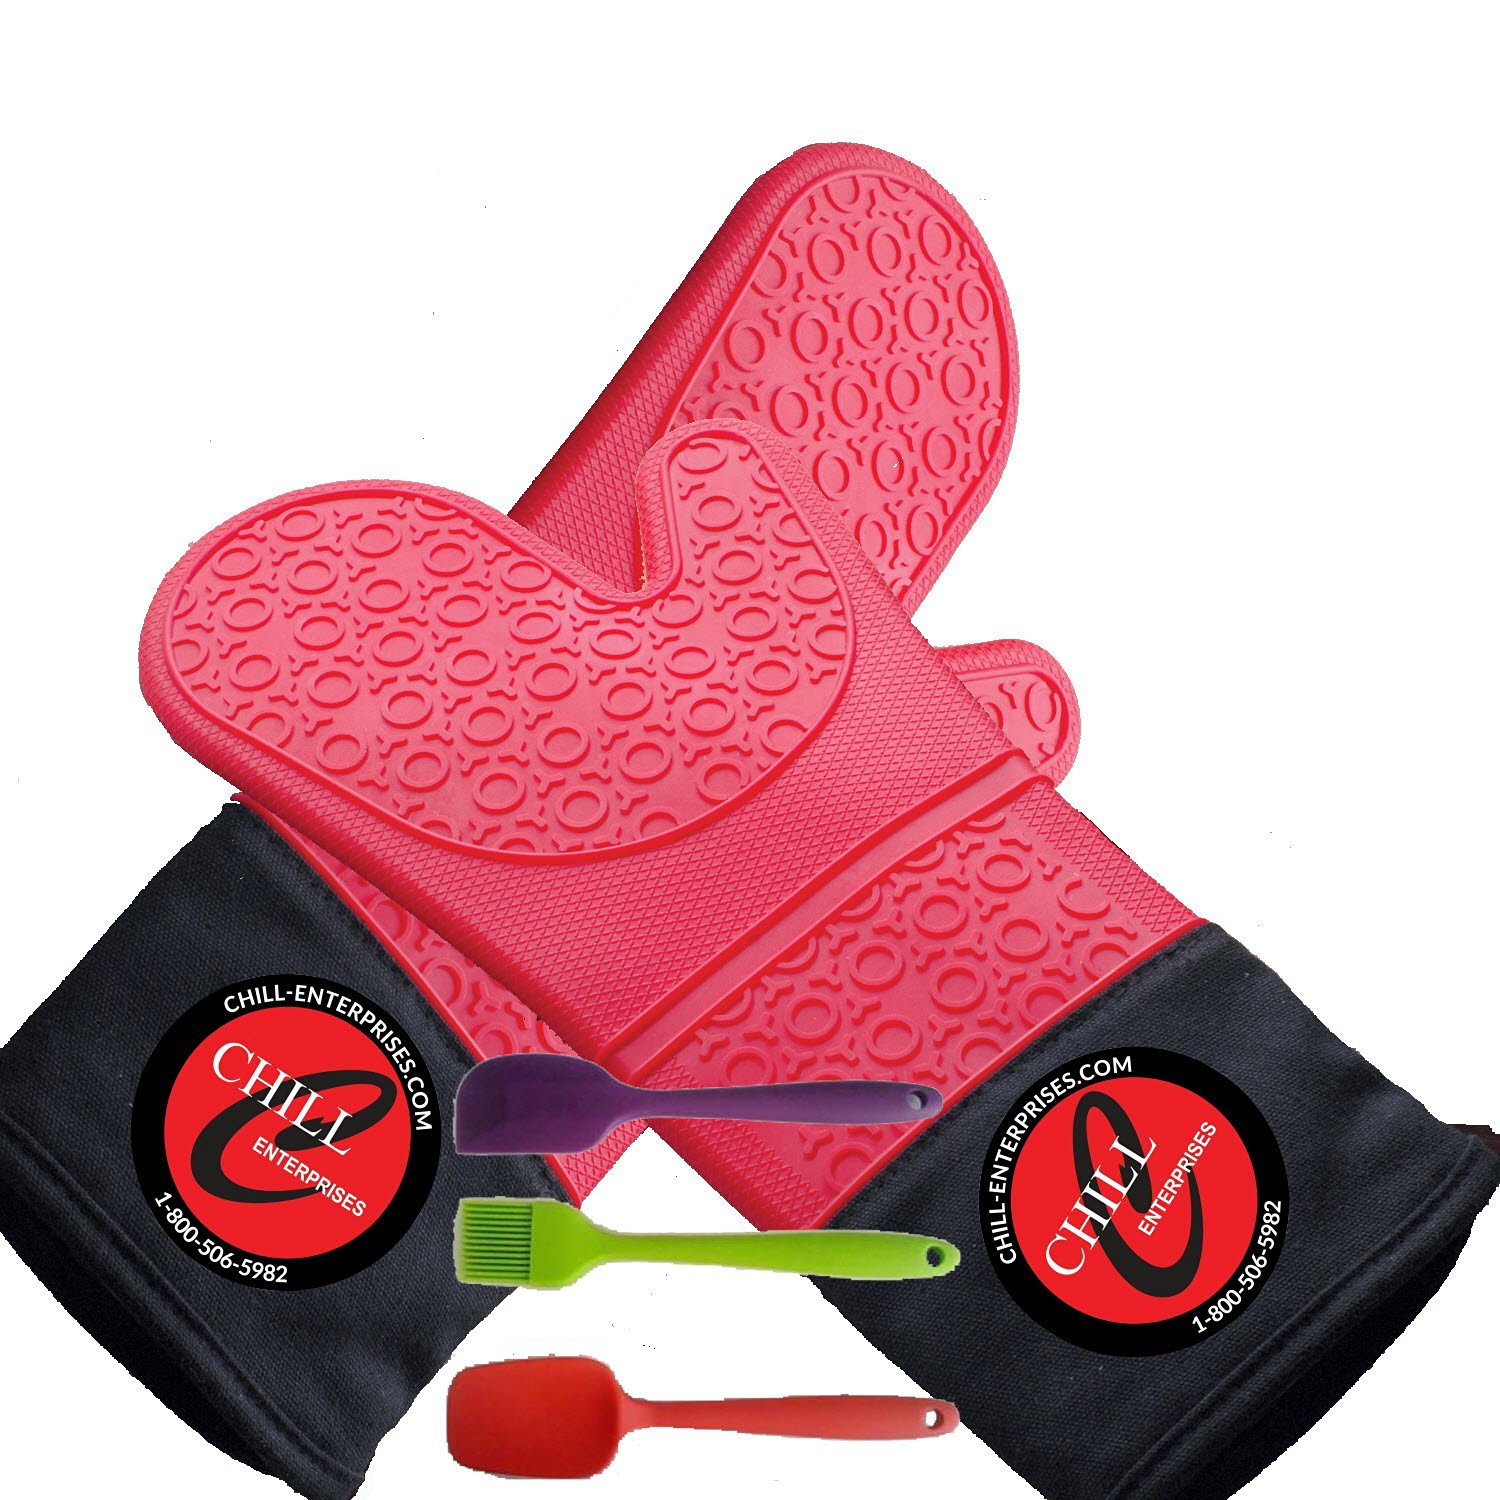 The Amazing Gator Mitts - 5 Piece Silicone Oven Safety Mitt Bundle - 1 Pair Mitt And 3 Silicone Utensils Red